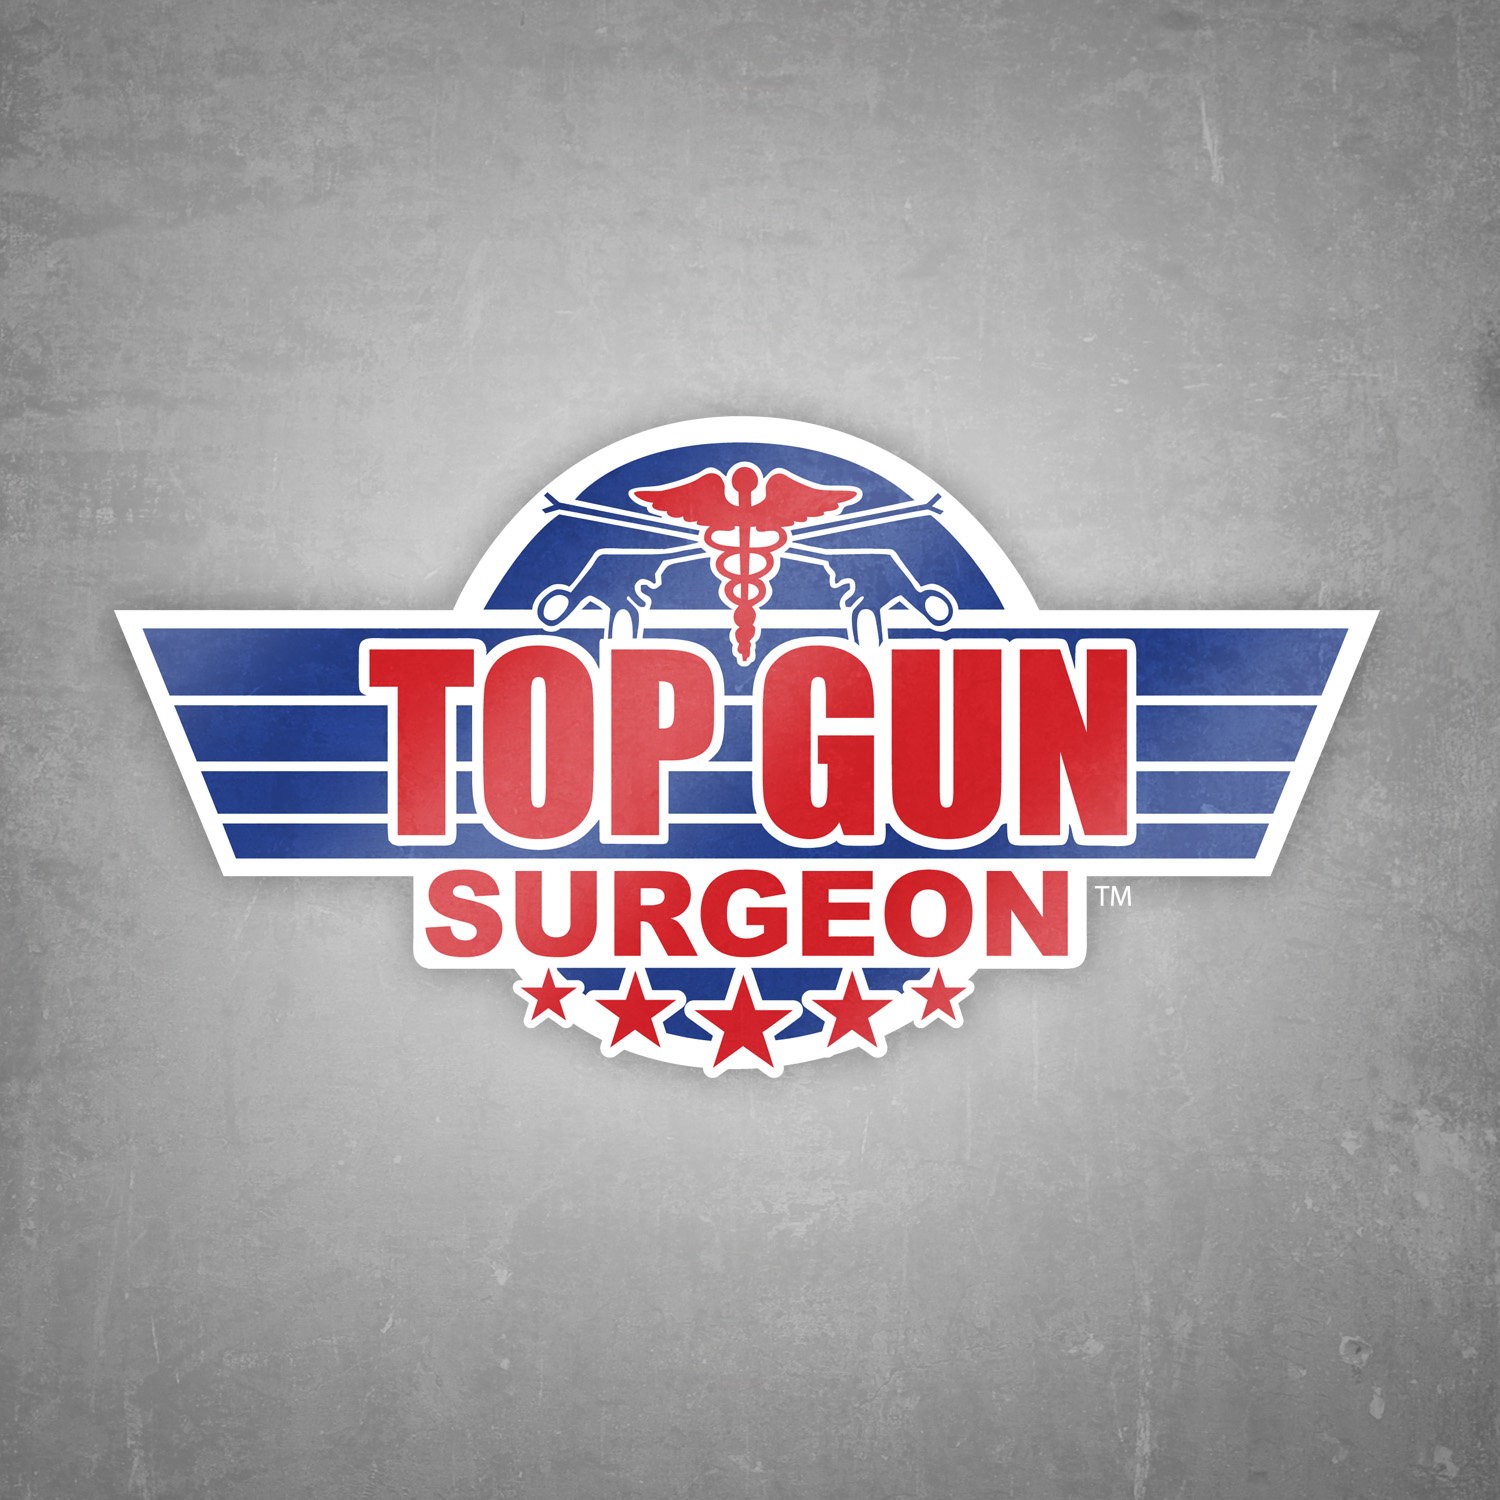 012413_logo_topgunsurgeon.jpg